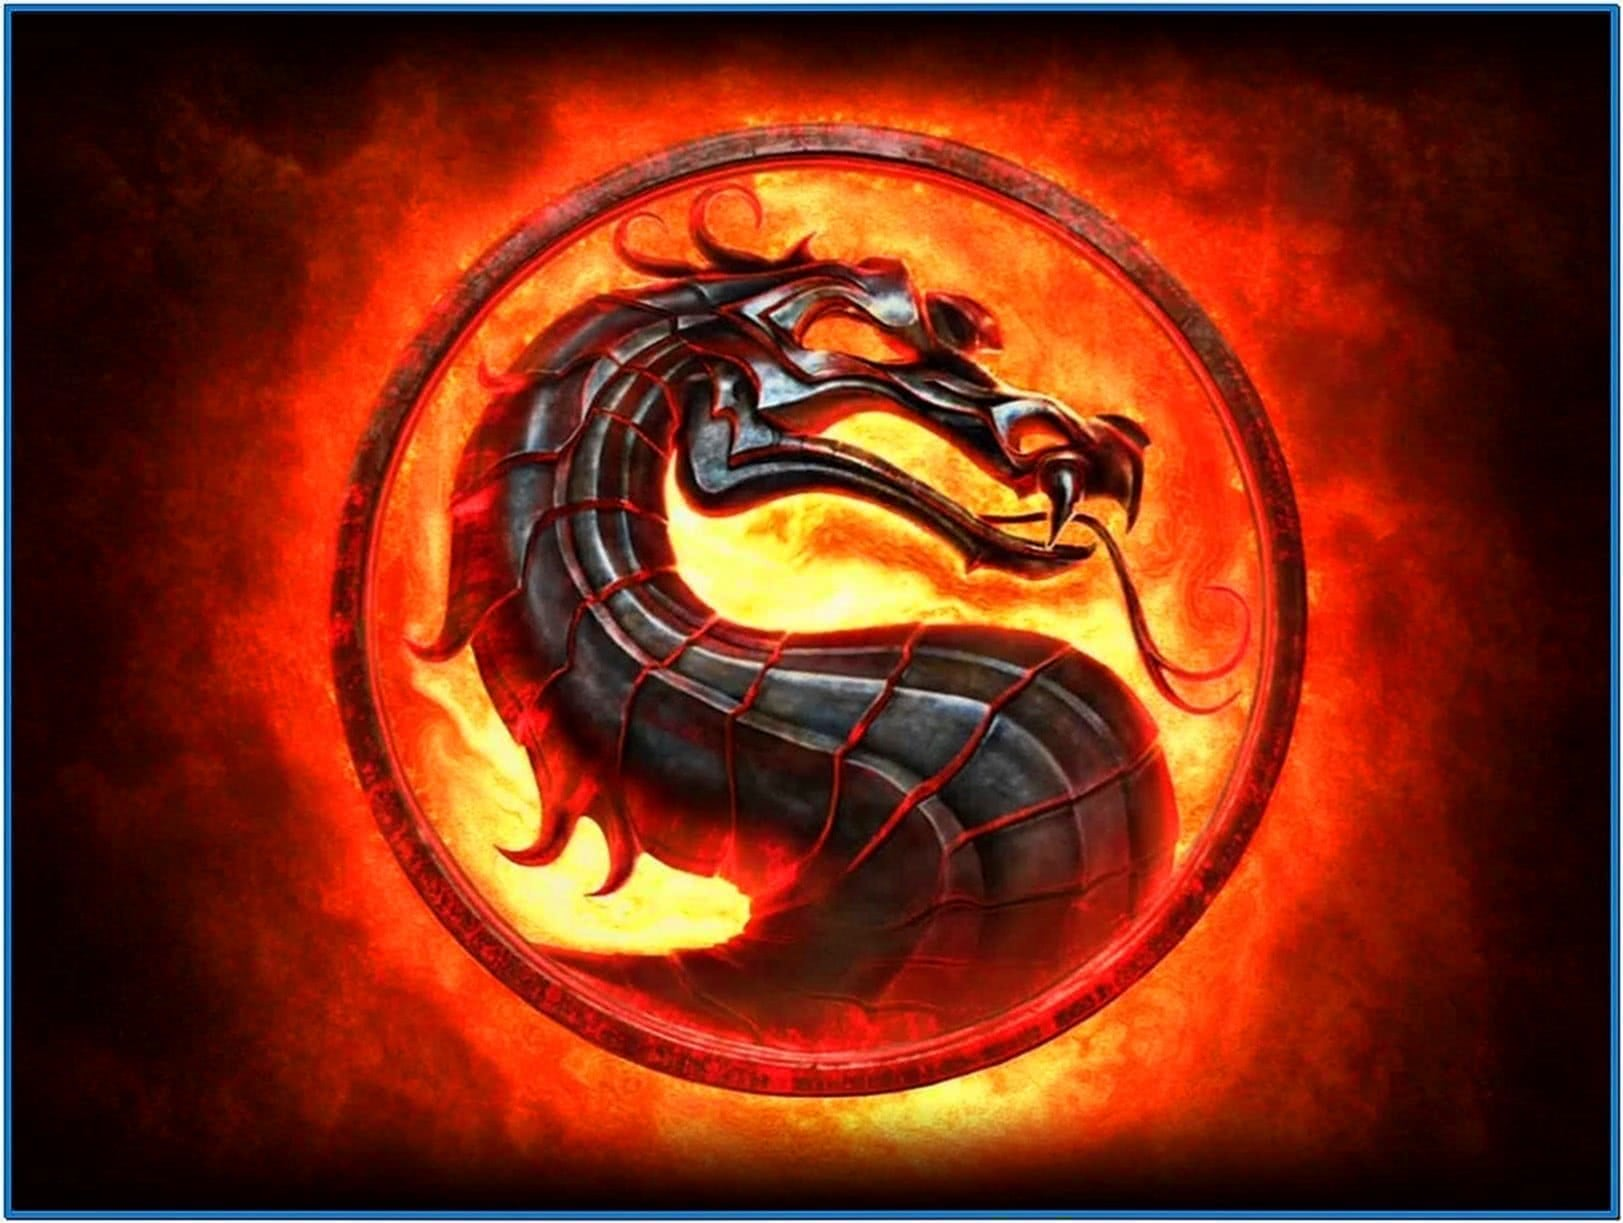 Mortal Kombat Screensaver Mac